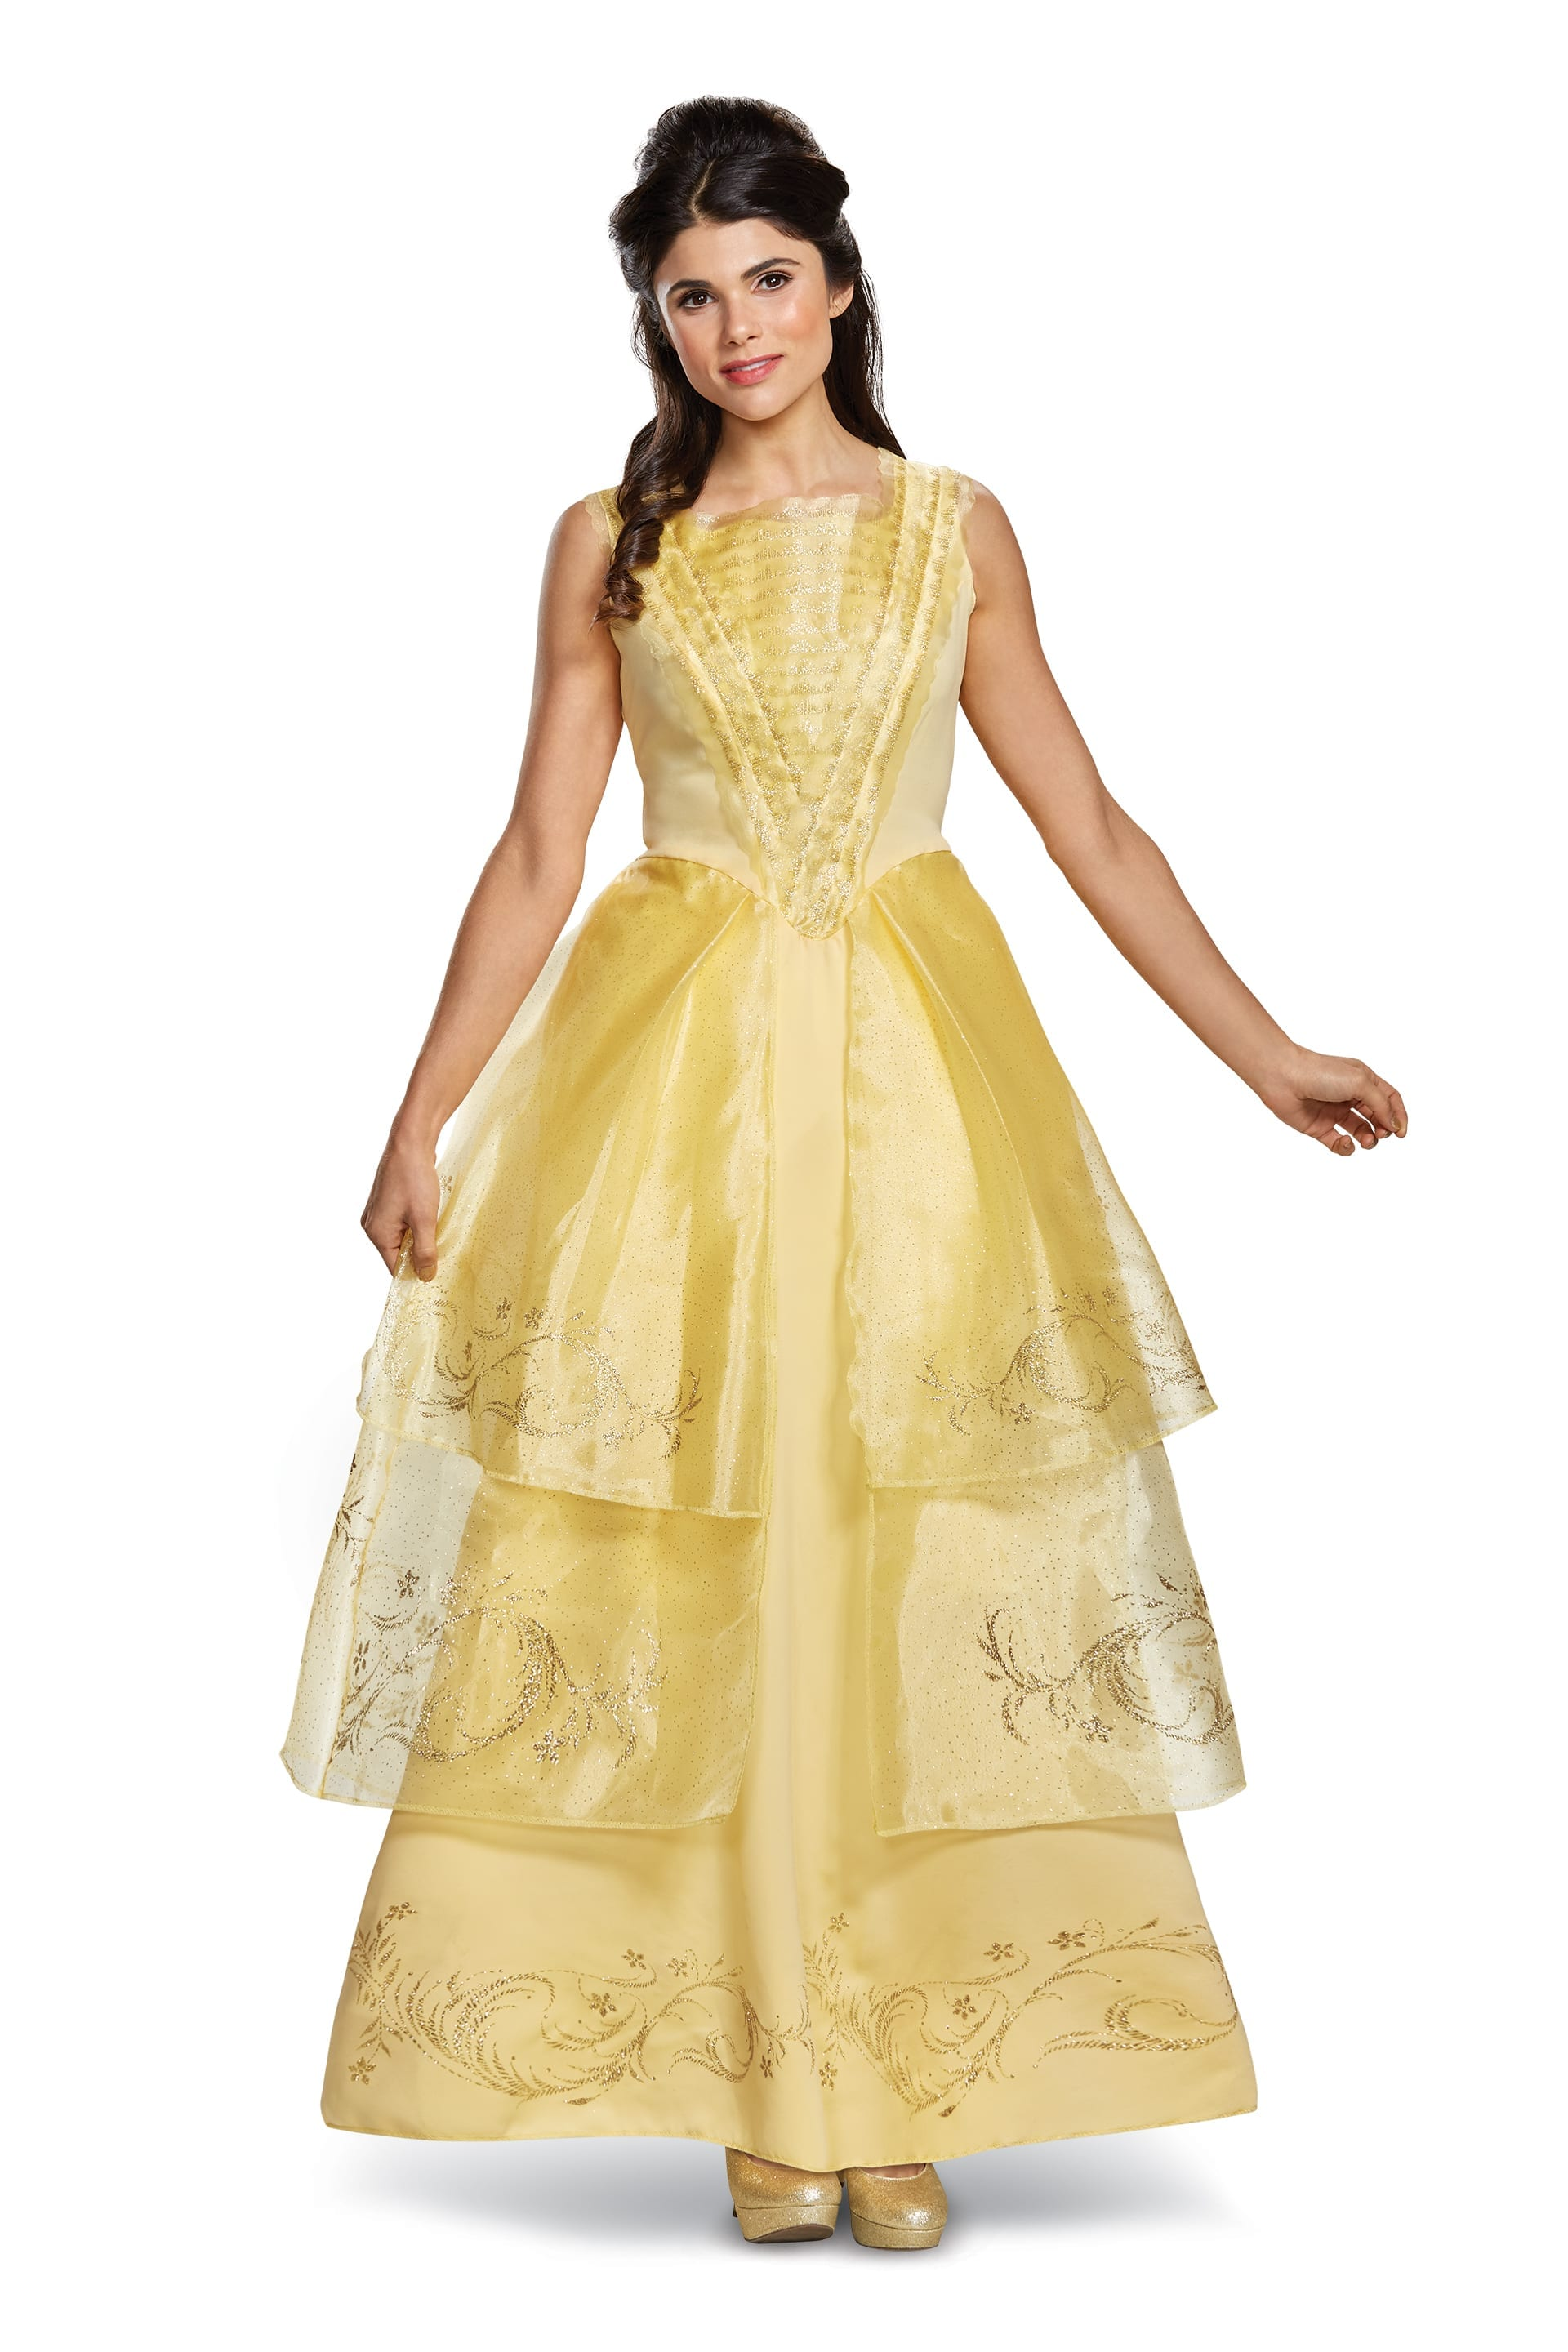 Belle Ball Gown Deluxe Adult -0